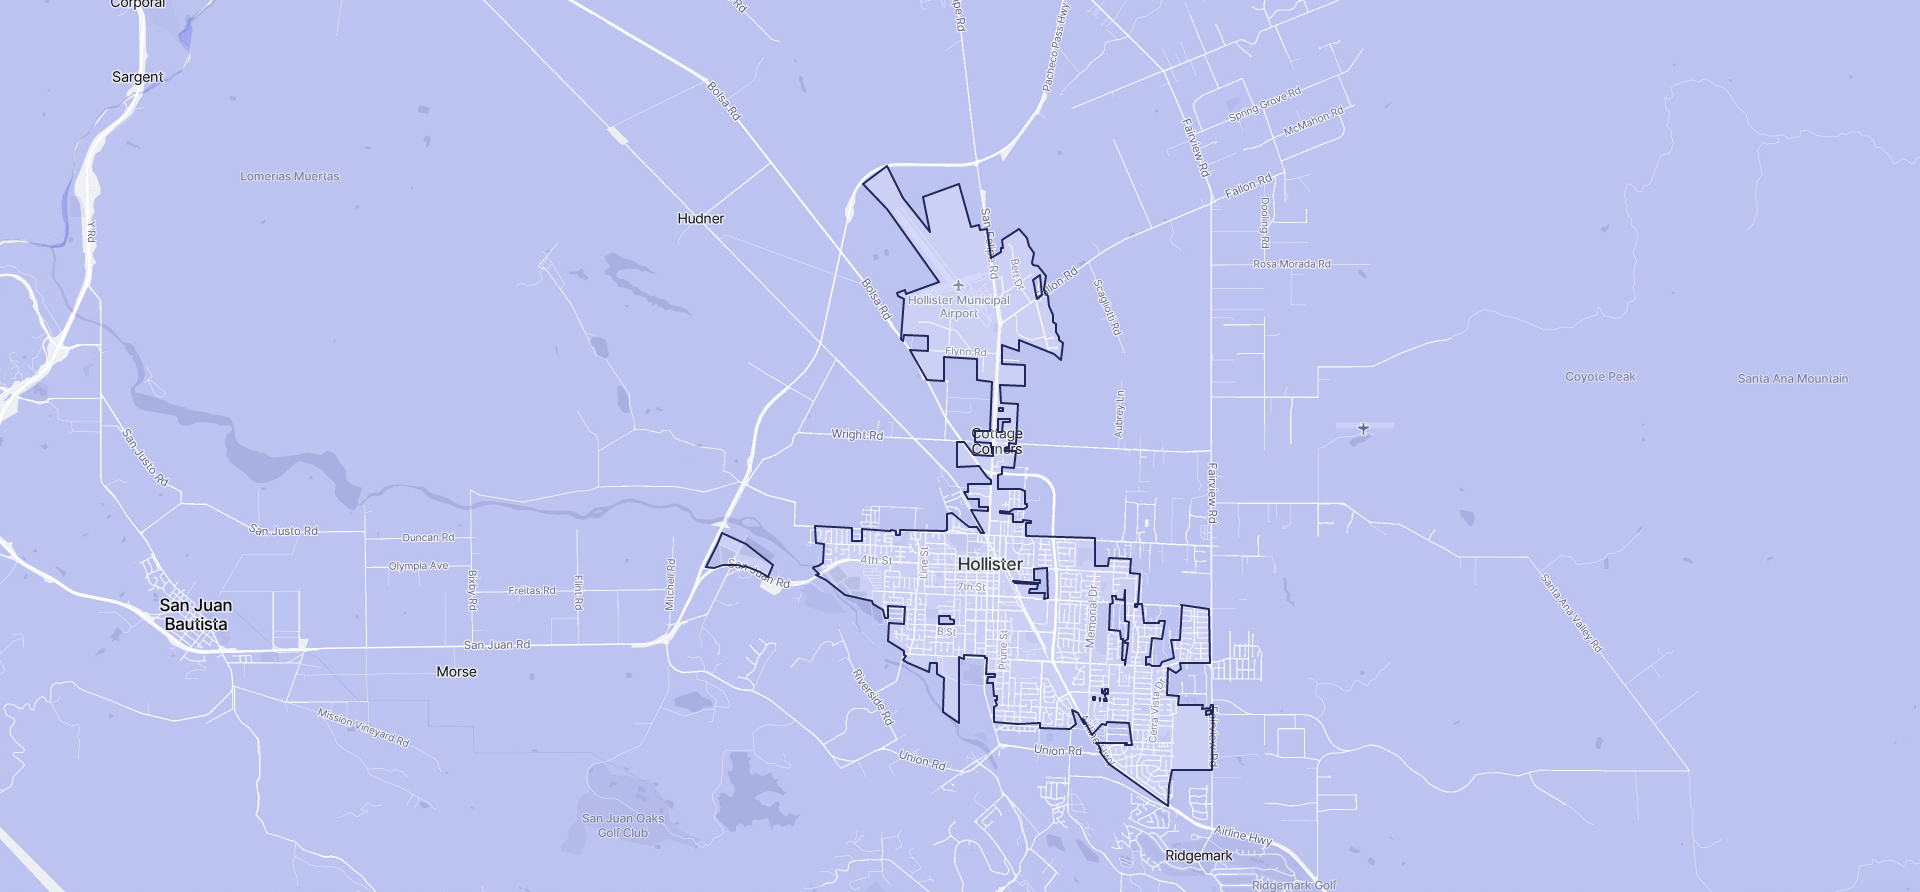 Image of Hollister boundaries on a map.